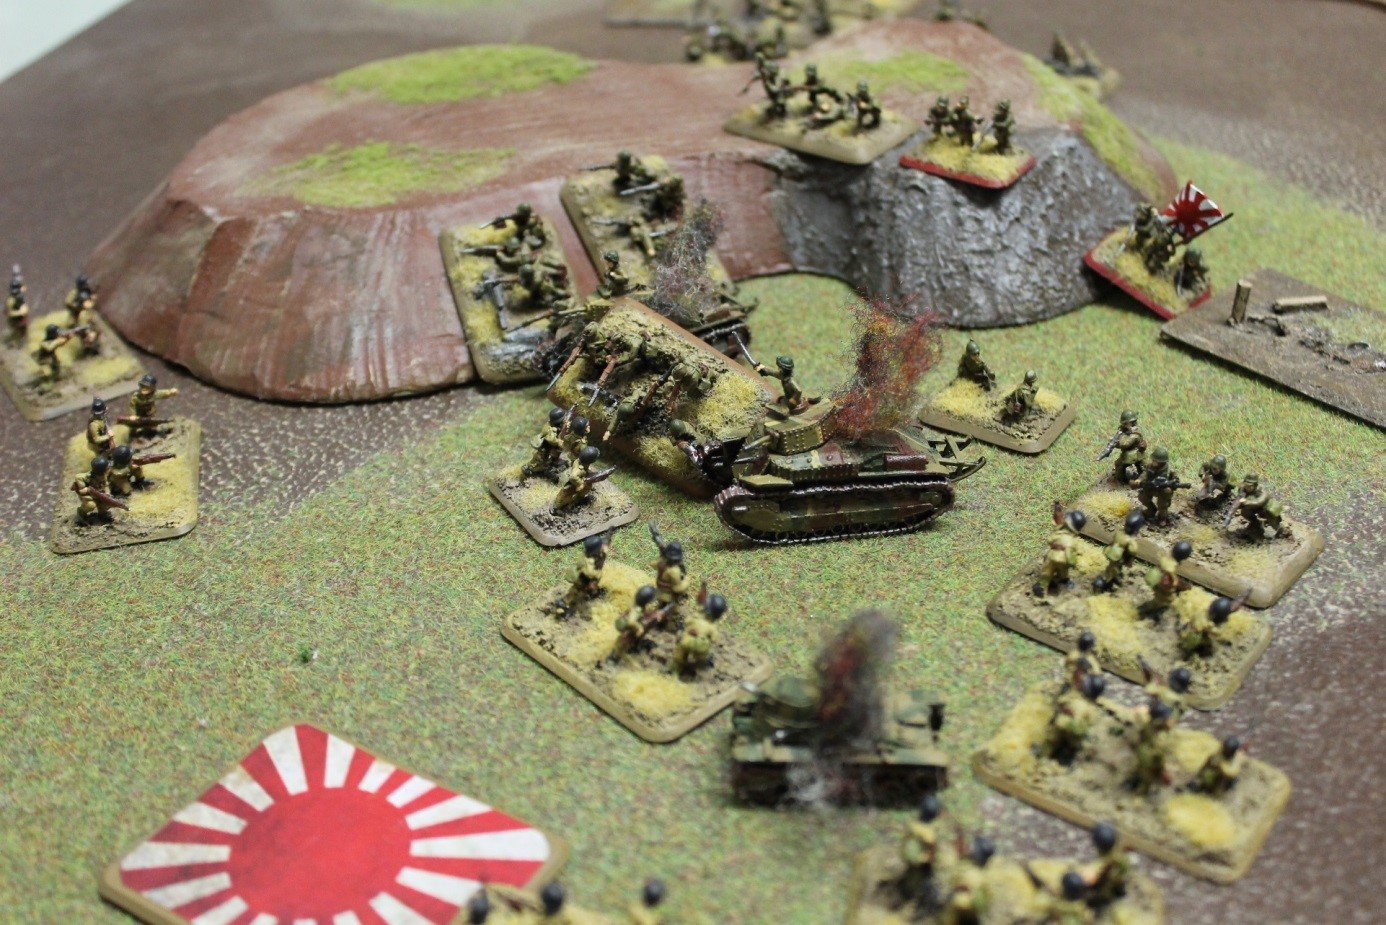 The Japanese advance rapidly after they fail company morale under the No Surrender rule.